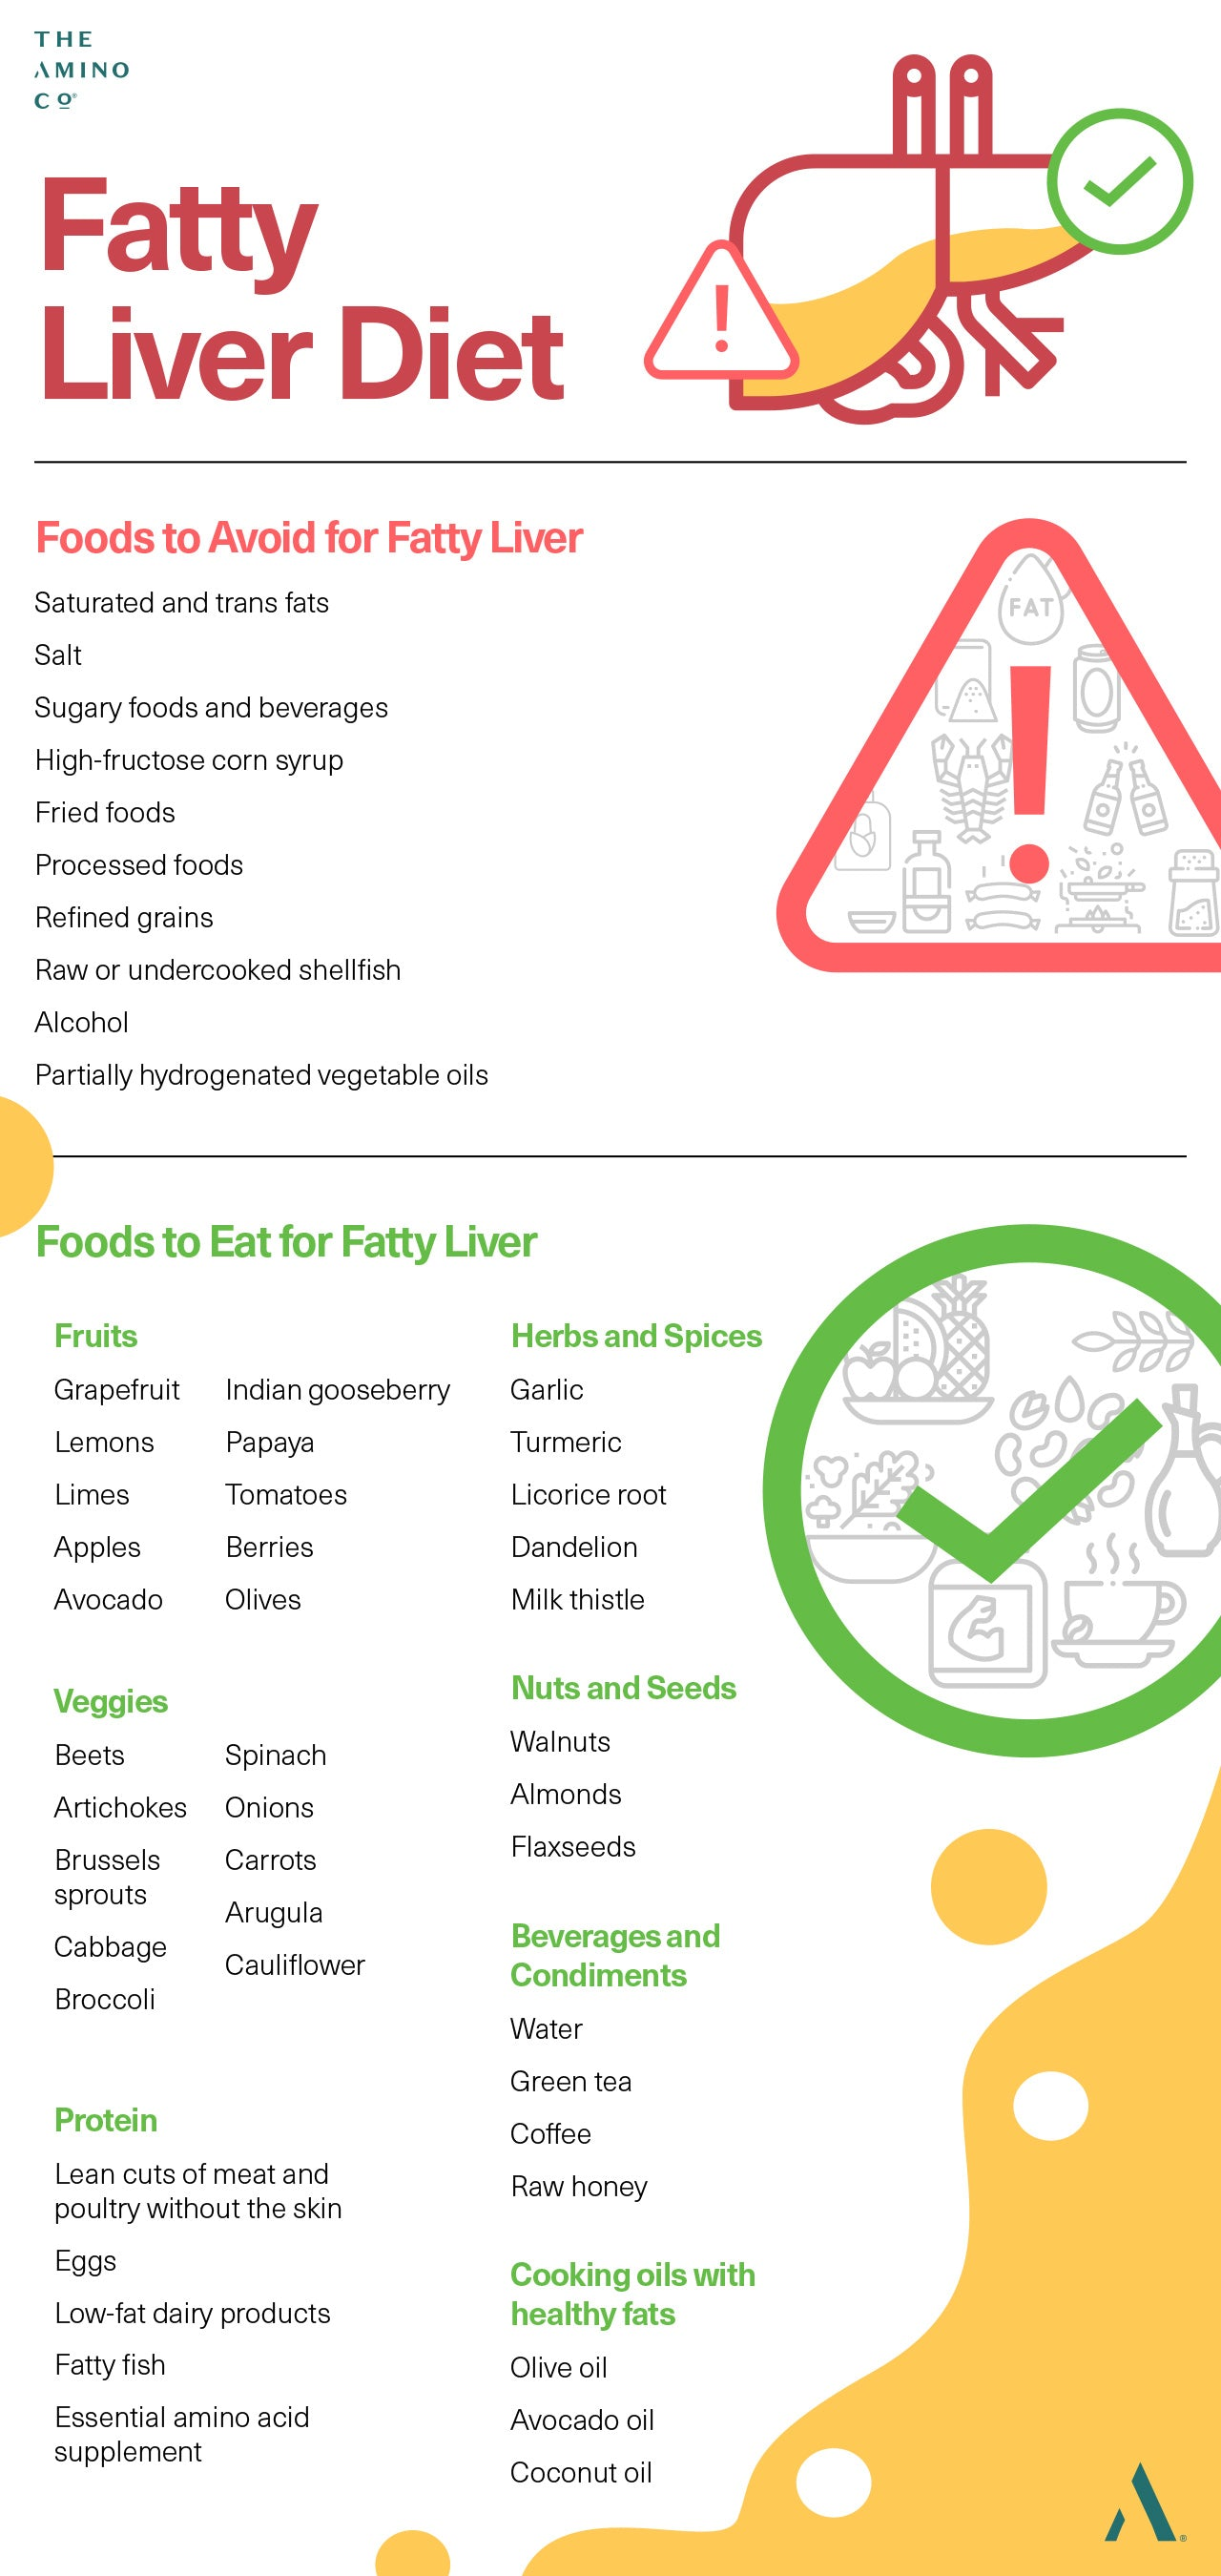 Foods to Eat for Fatty Liver